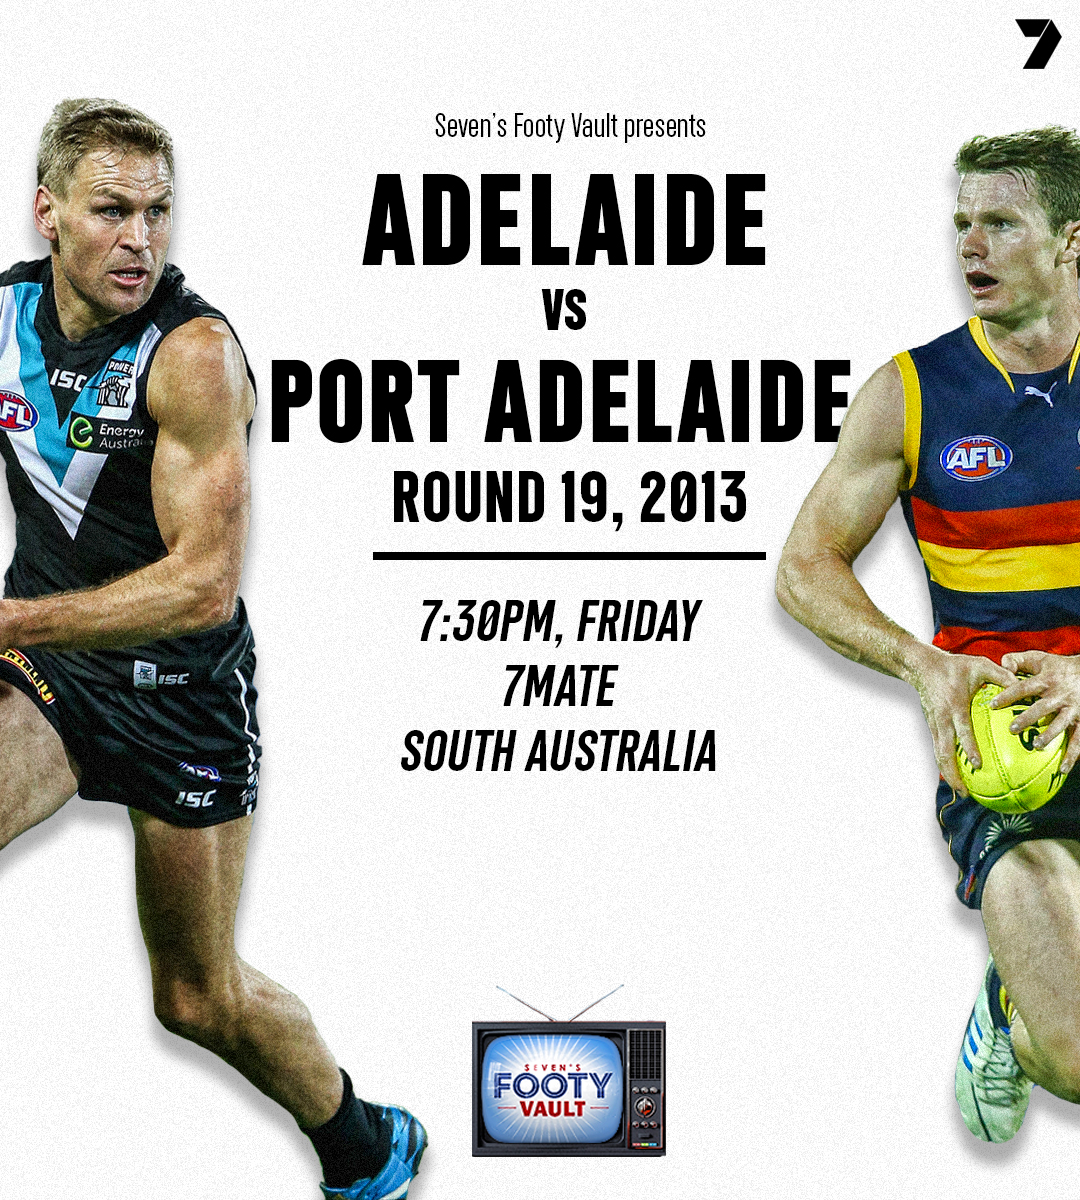 Strap yourselves in Power fans. We reckon you're going to enjoy this one 😏 #weareportadelaide